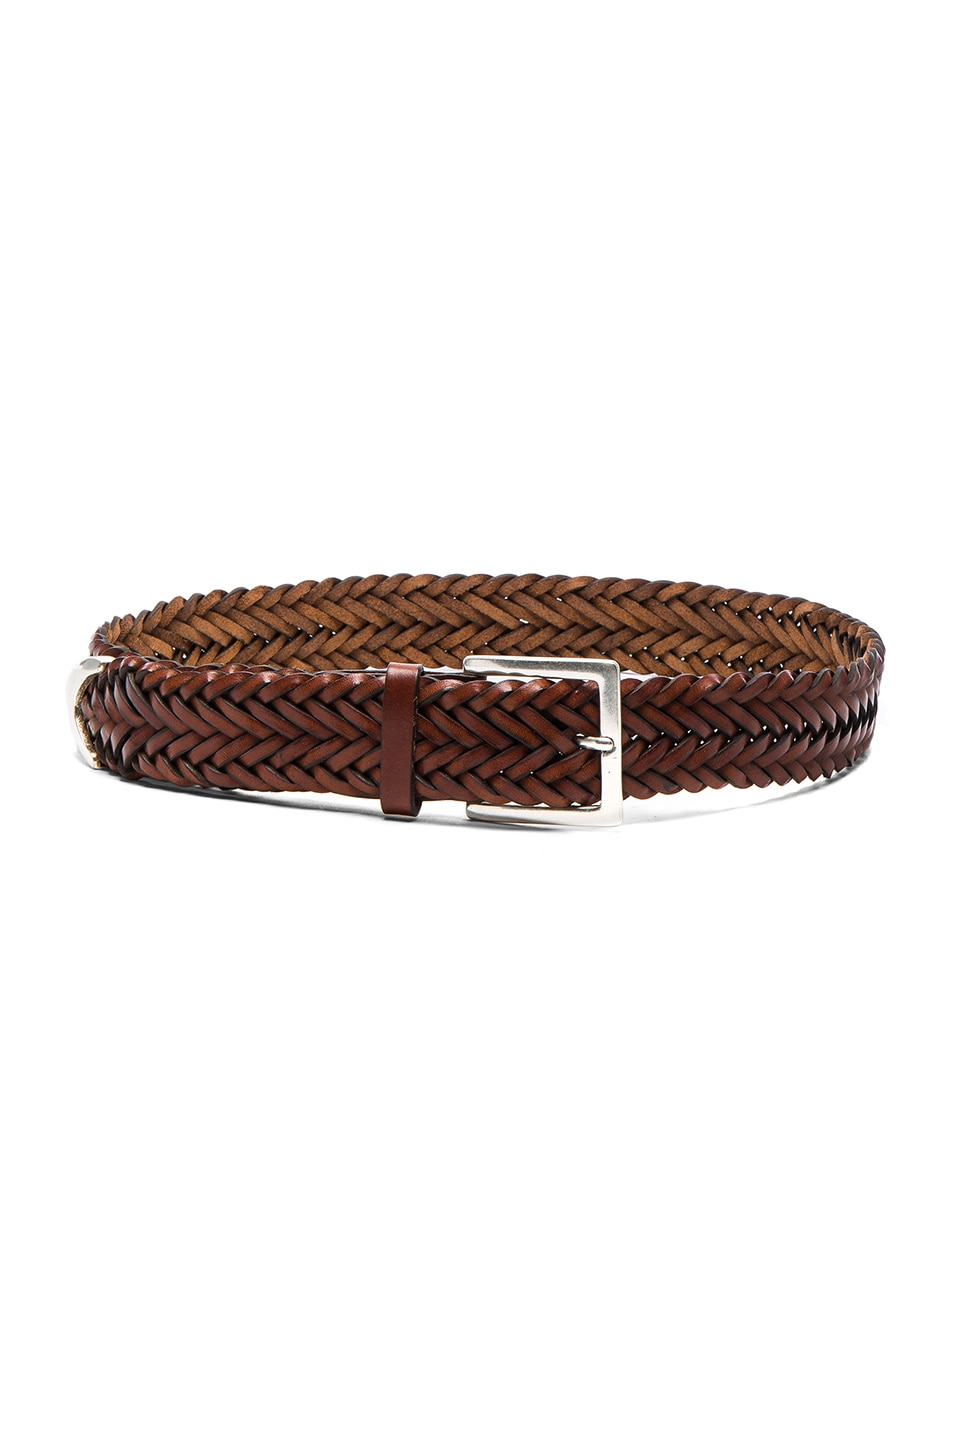 Image 1 of Rag & Bone Braided Belt in Saddle Brown